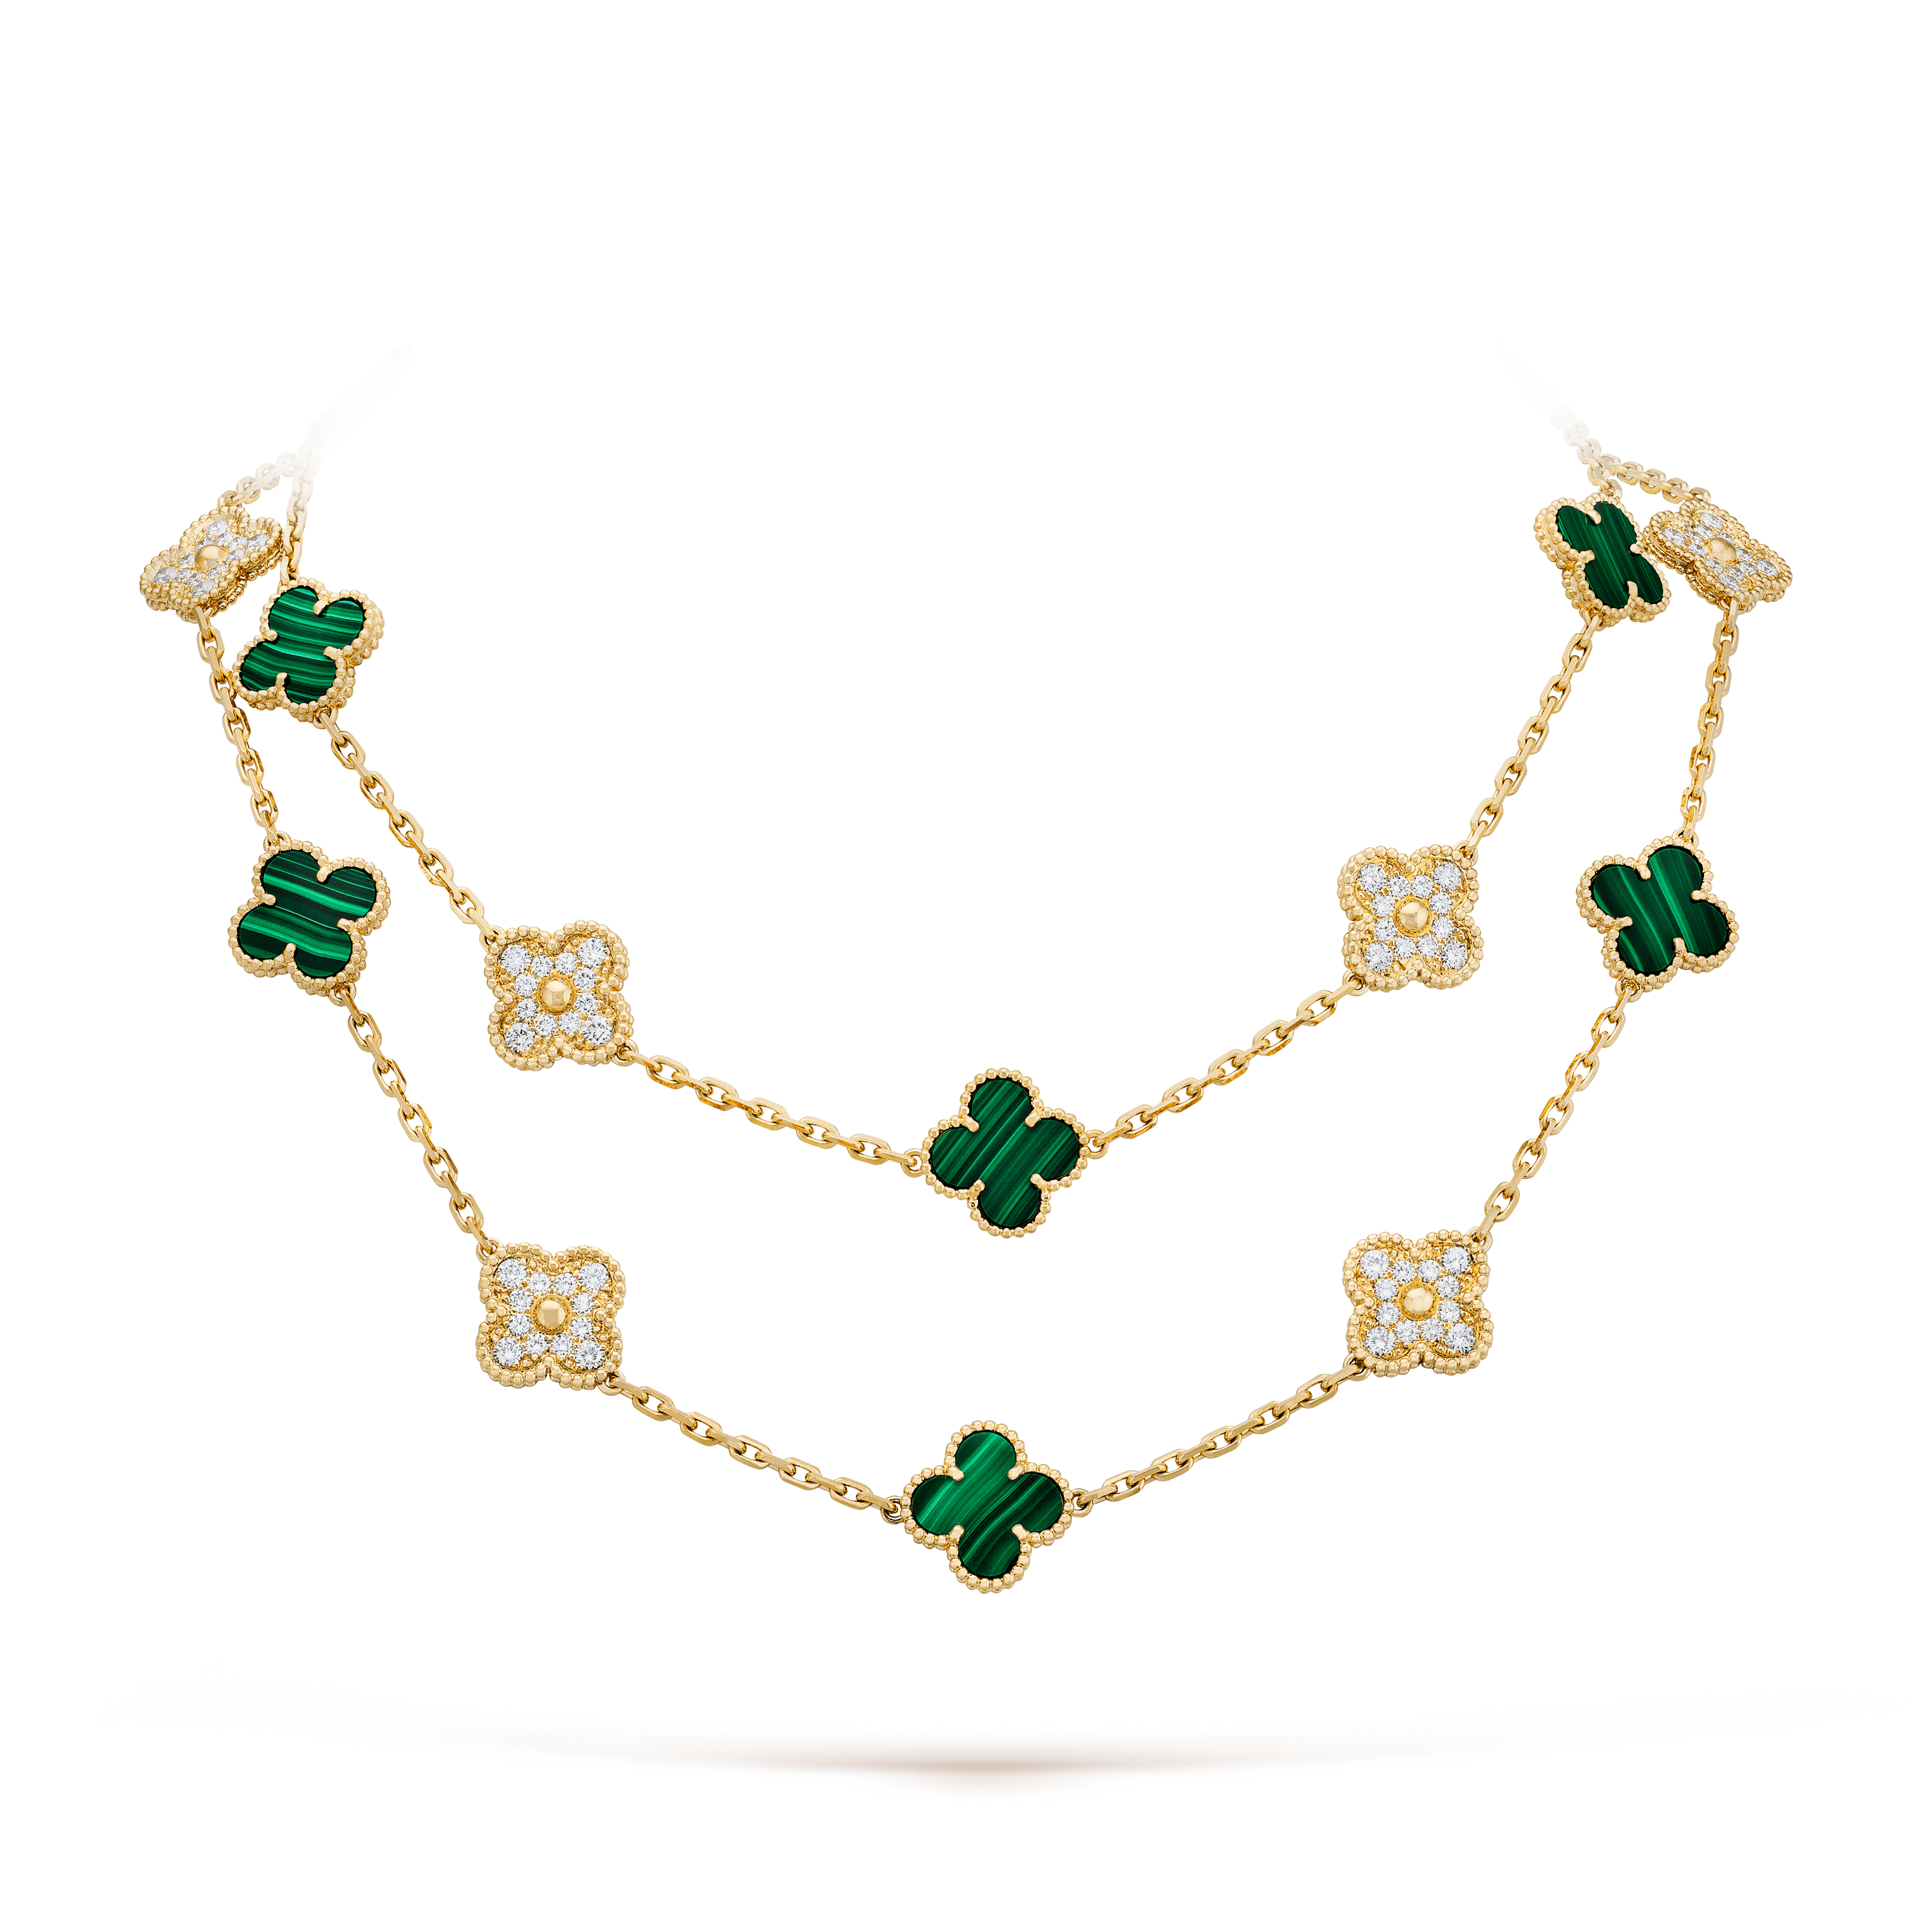 Vintage Alhambra long necklace, 20 motifs, - Detail View - VCARO7GP00 - Van Cleef & Arpels